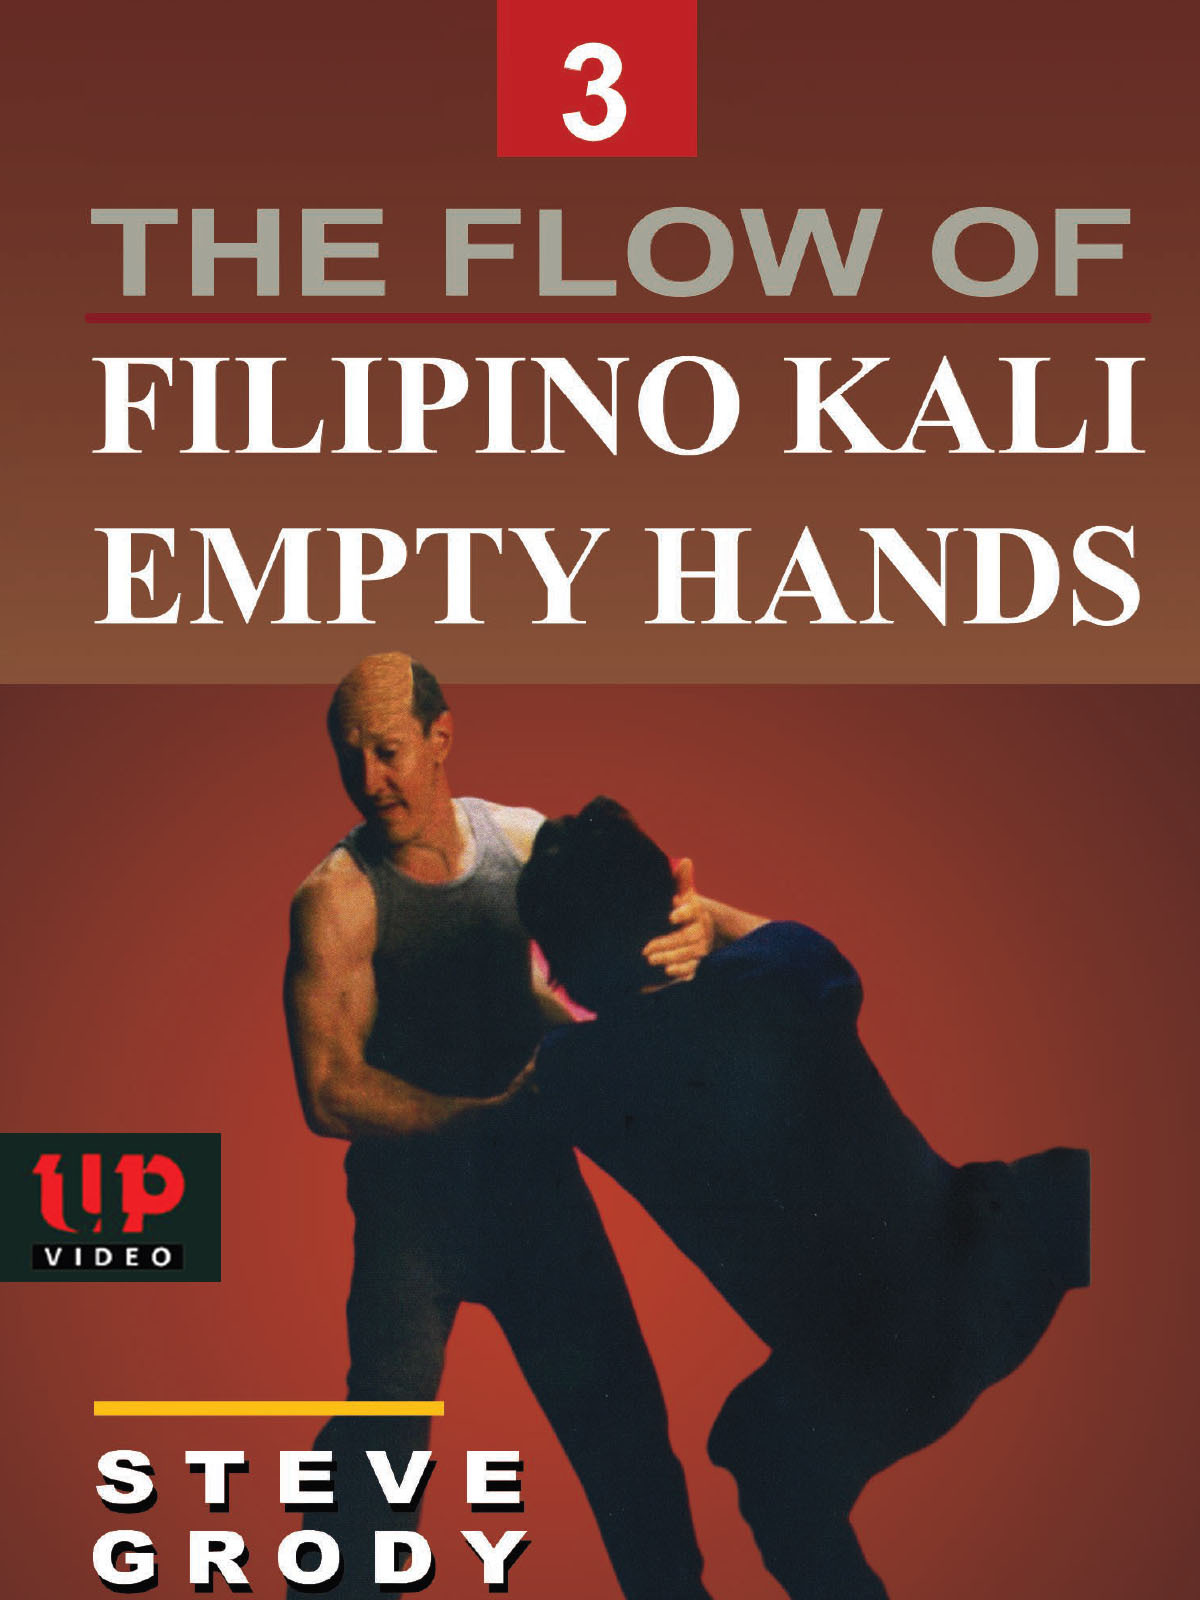 3 DVD SET Flow of Filipino Kali Empty Hands - Steve Grody escrima arnis fma